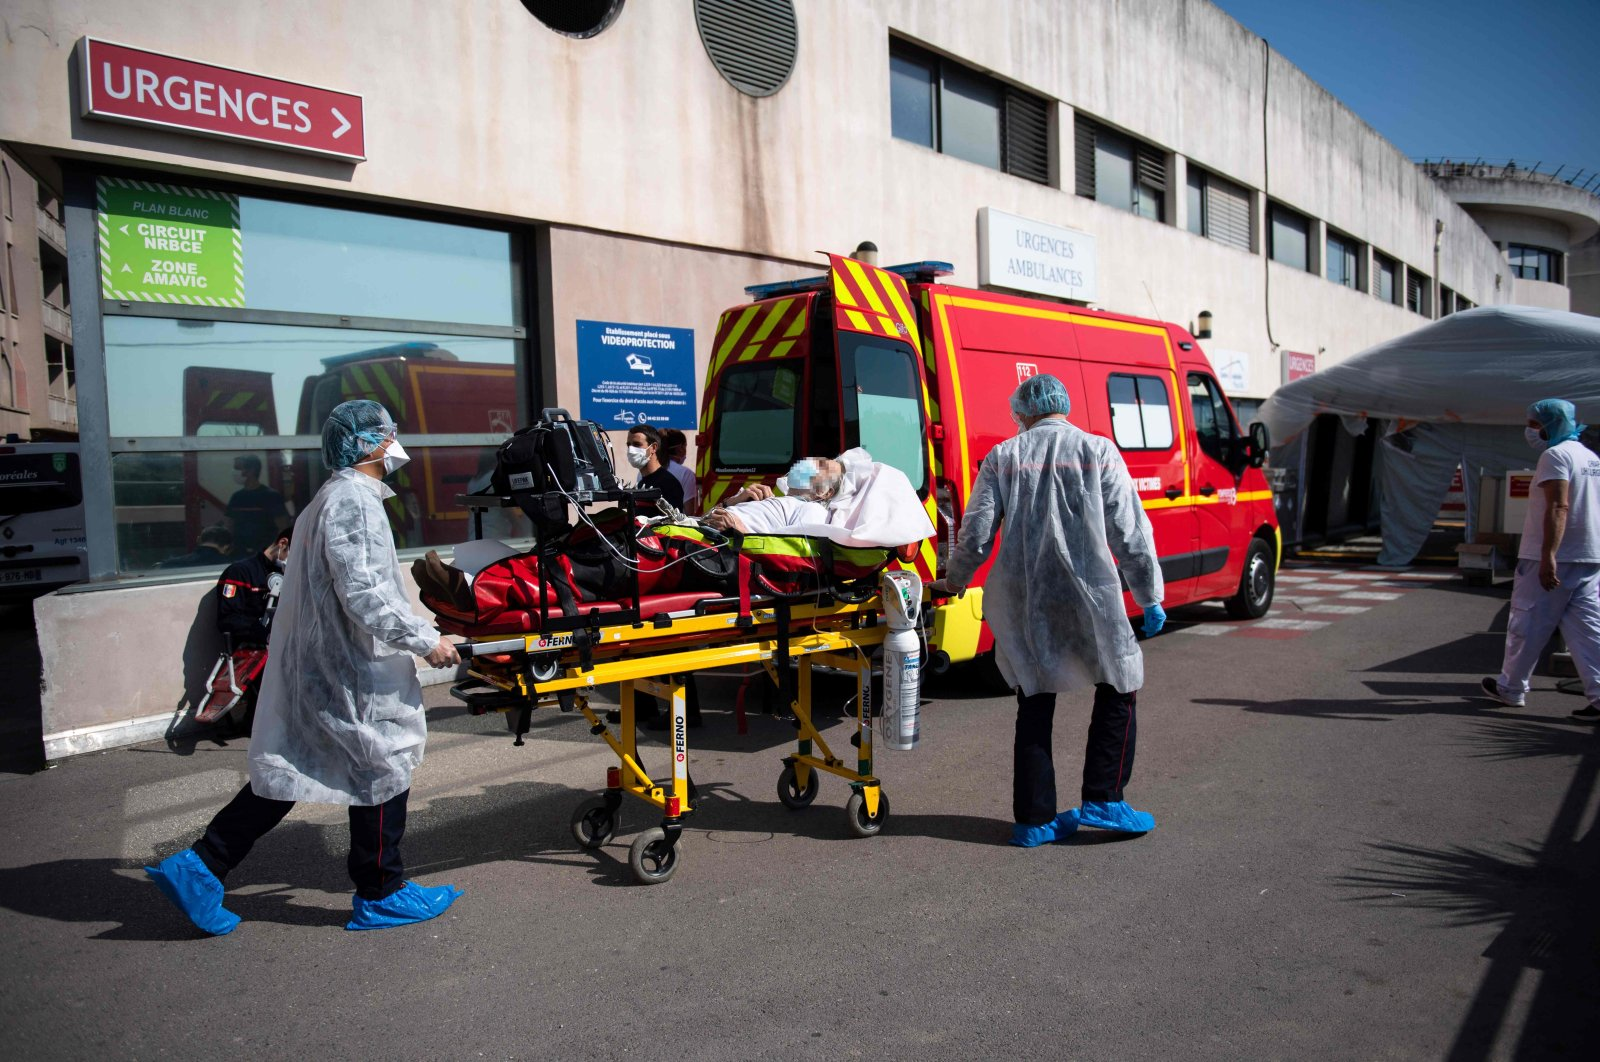 Health workers wearing protective gear ransport a patient on a stretcher toward a tent used as the reception of the emergency services of the Aix Hospital Centre (Centre Hospitalier du Pays d'Aix) in Aix-en-Provence, southern France, on April 3, 2020, on the eighteenth day of a lockdown in France aimed at curbing the spread of the COVID-19 infection caused by the novel coronavirus. (AFP Photo)